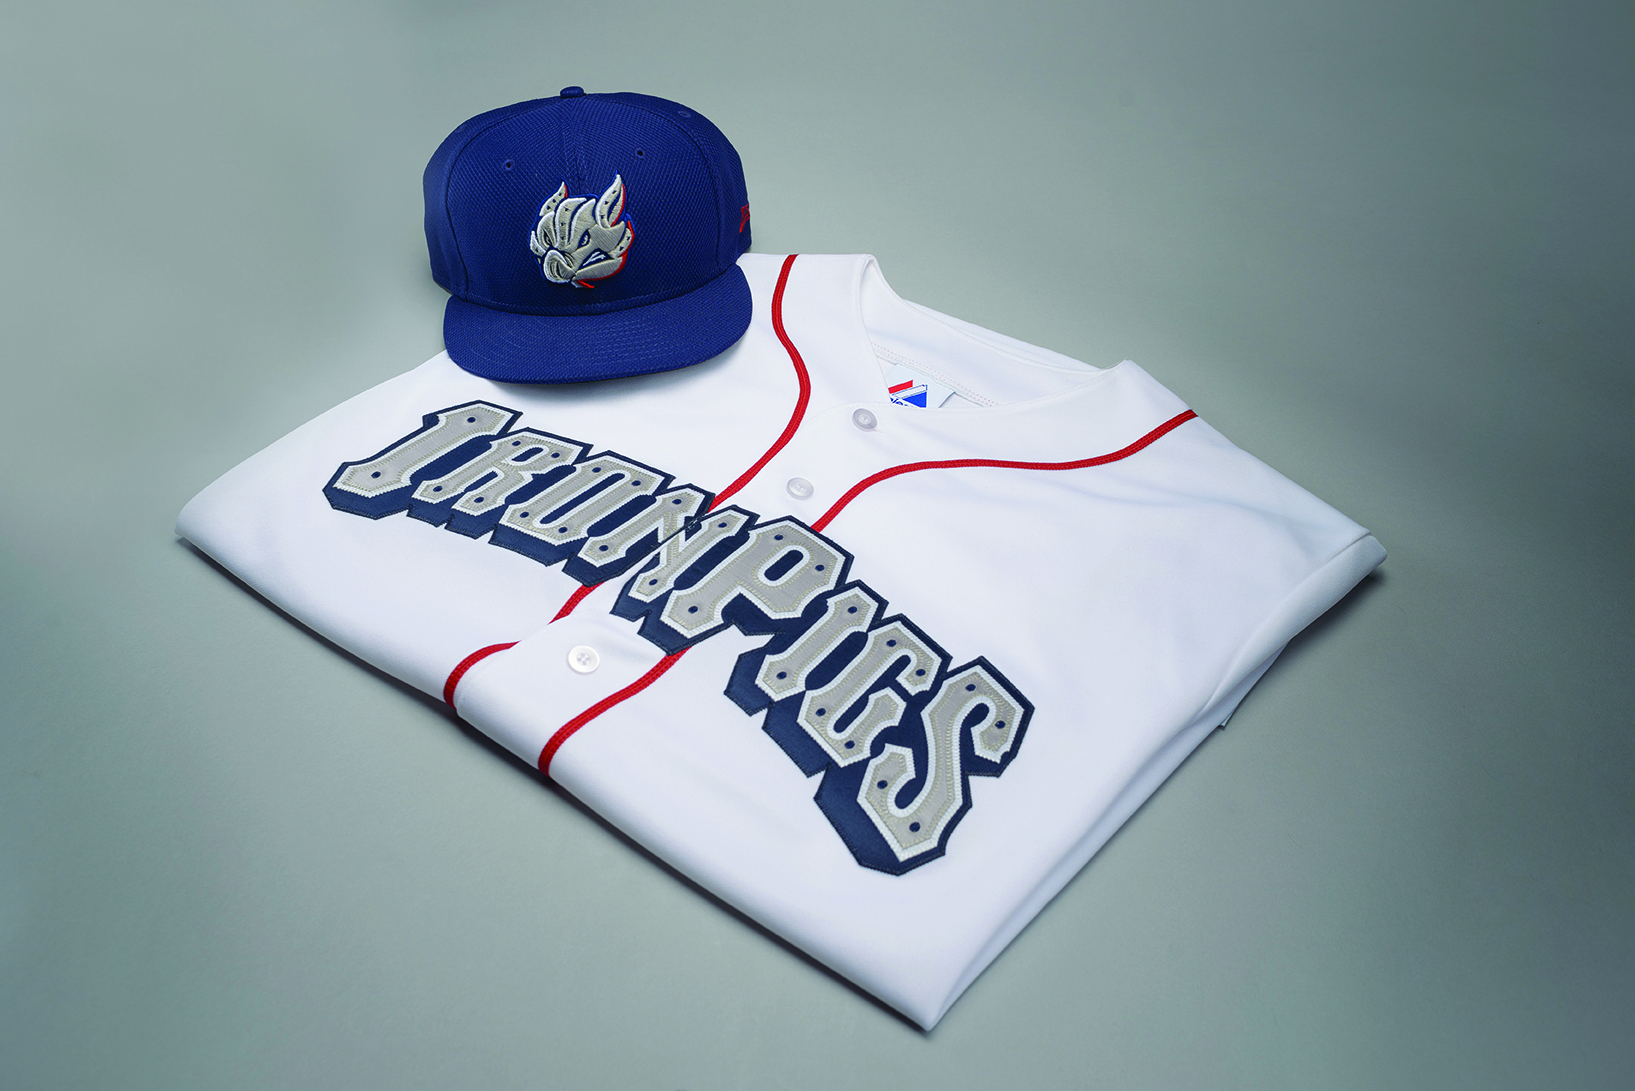 Iron Pigs Uniform and Hat